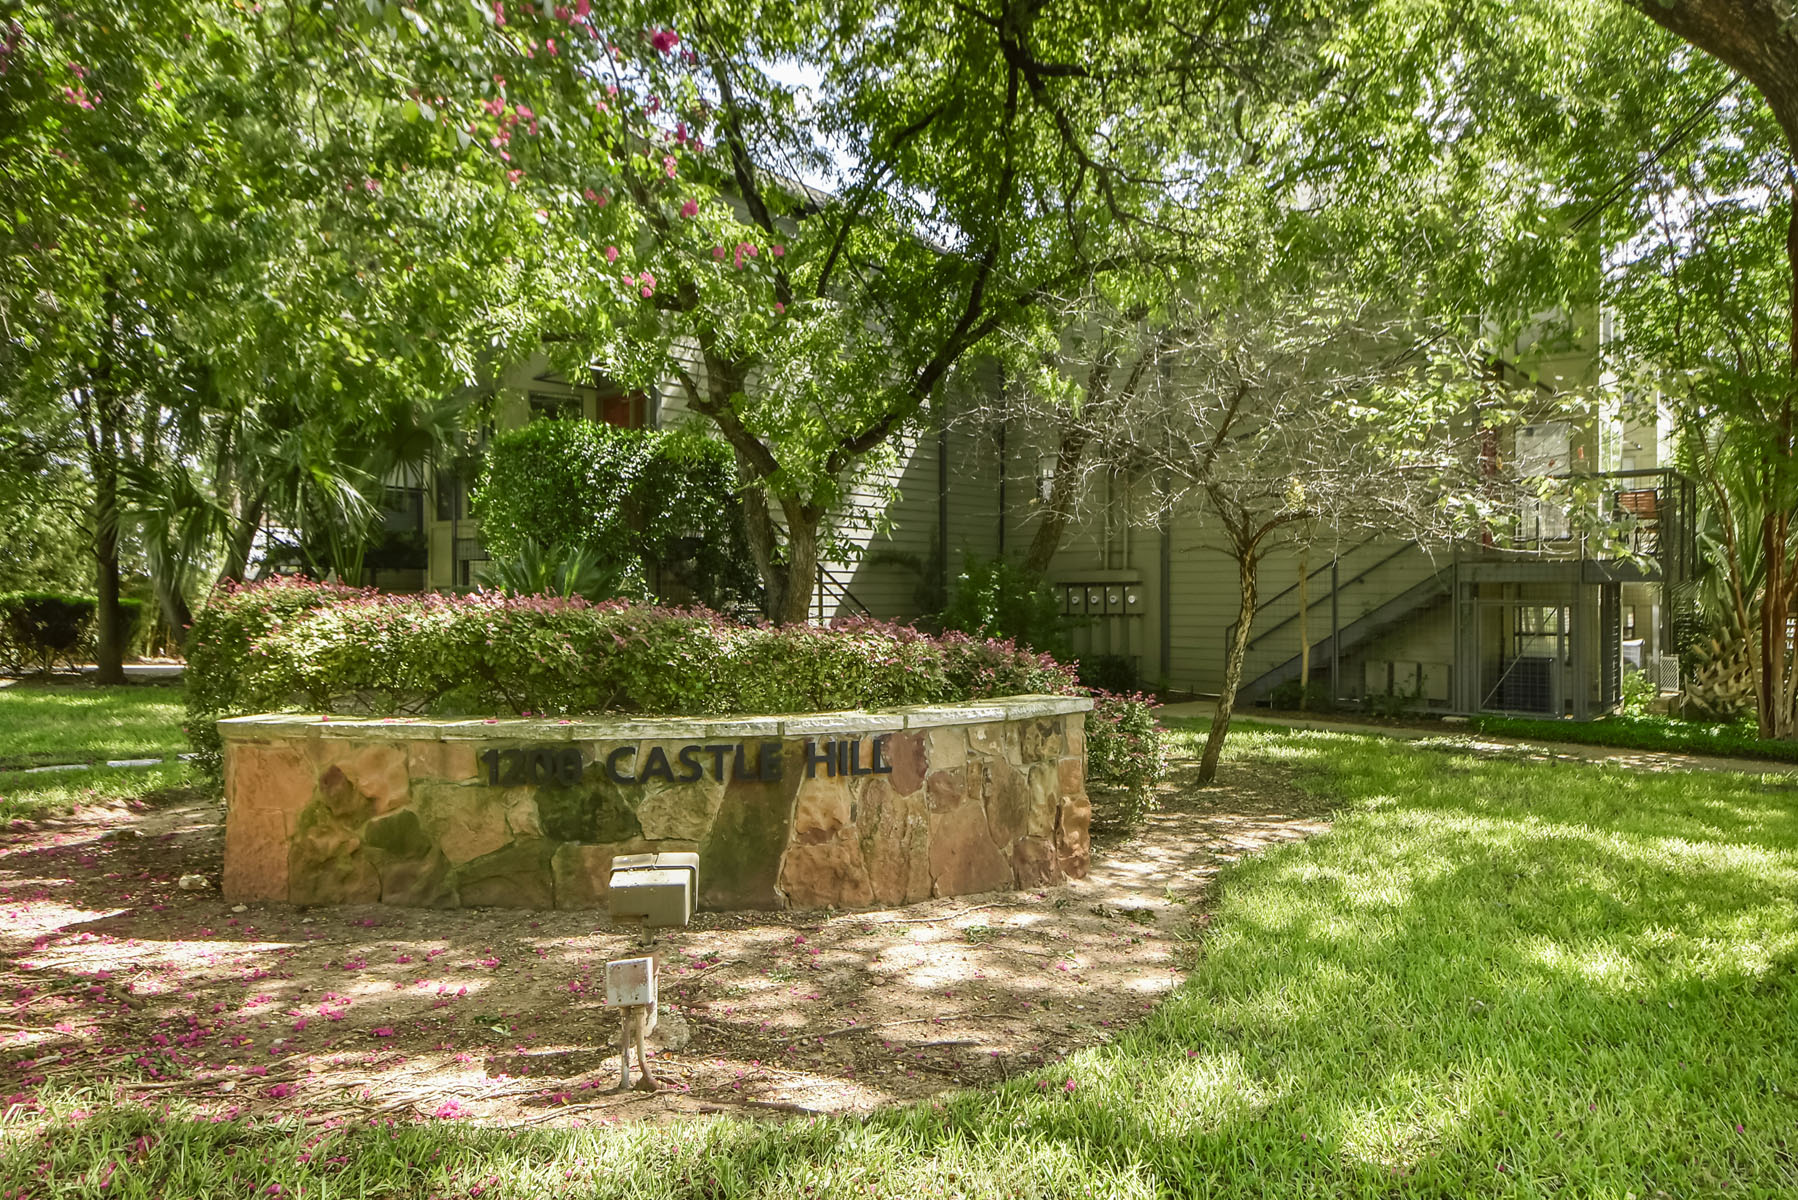 Additional photo for property listing at Rare find in Iconic 'Clarksville' Austin TX 1200 Castle Hill St J Austin, Texas 78703 Estados Unidos